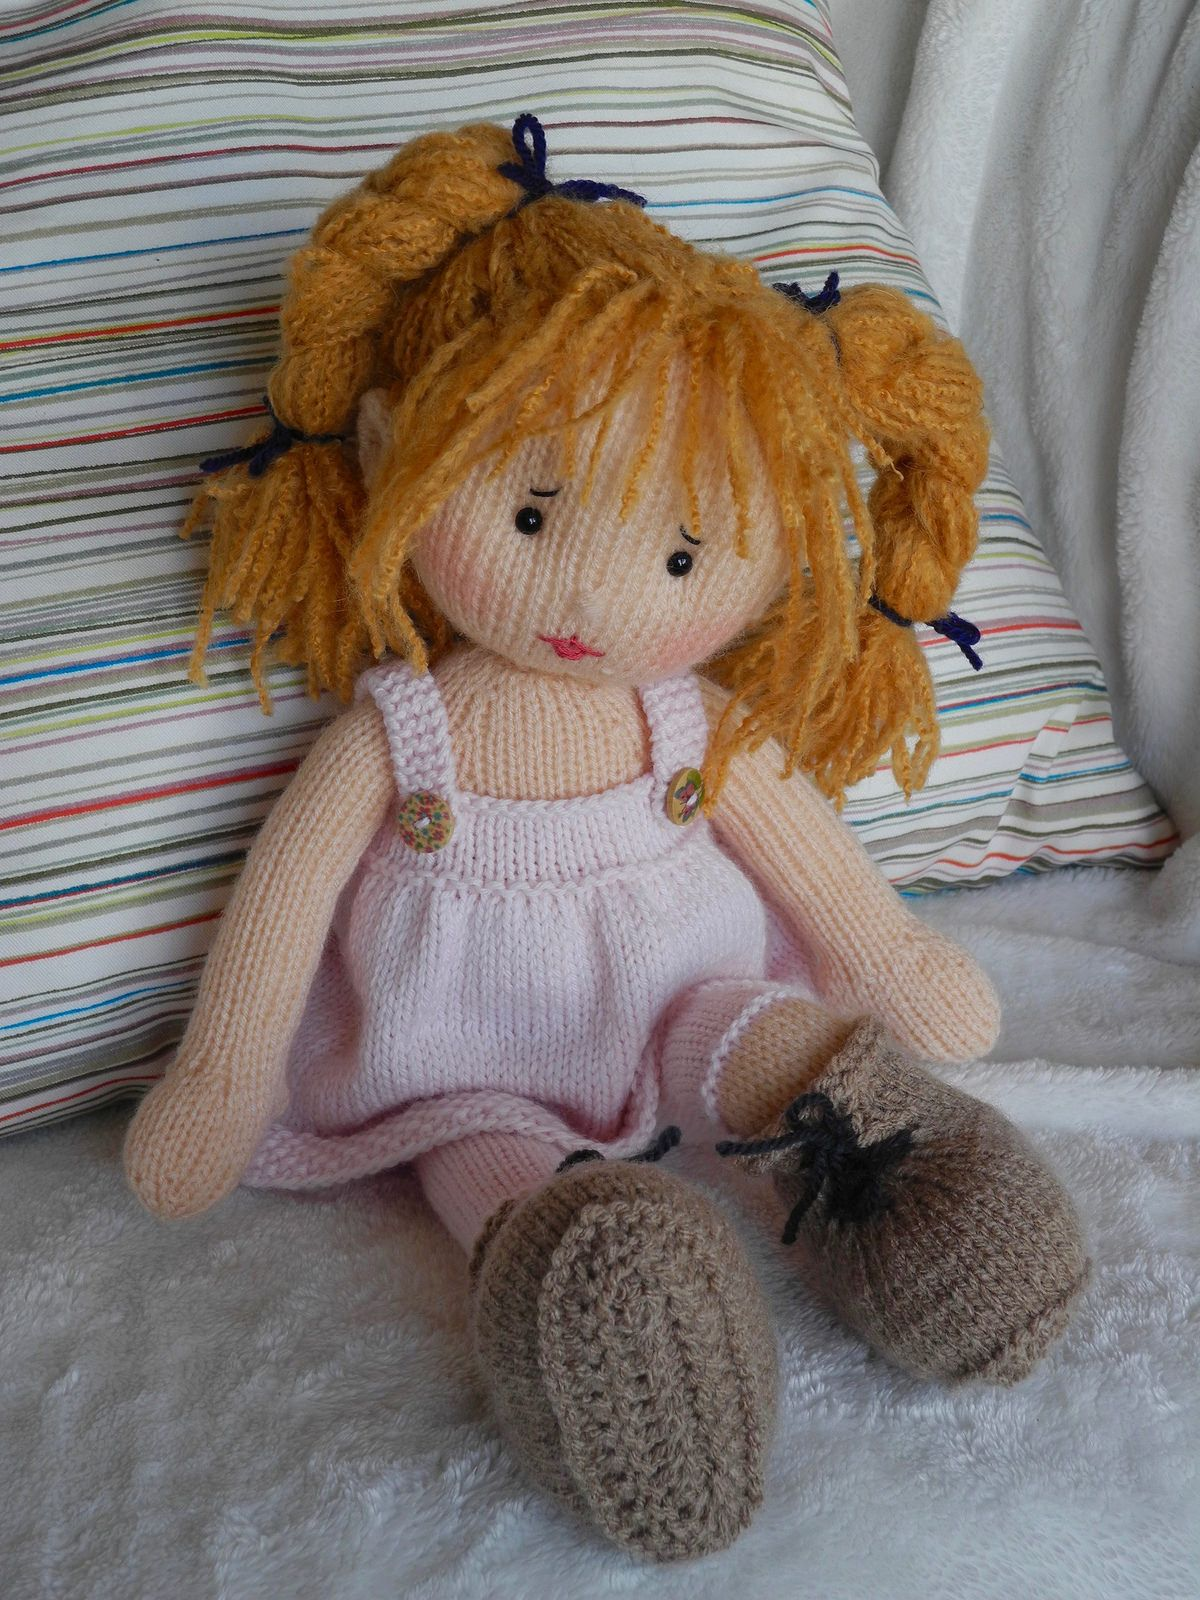 Lola 3 wip dolls toy and amigurumi patterns knit patterns bankloansurffo Image collections